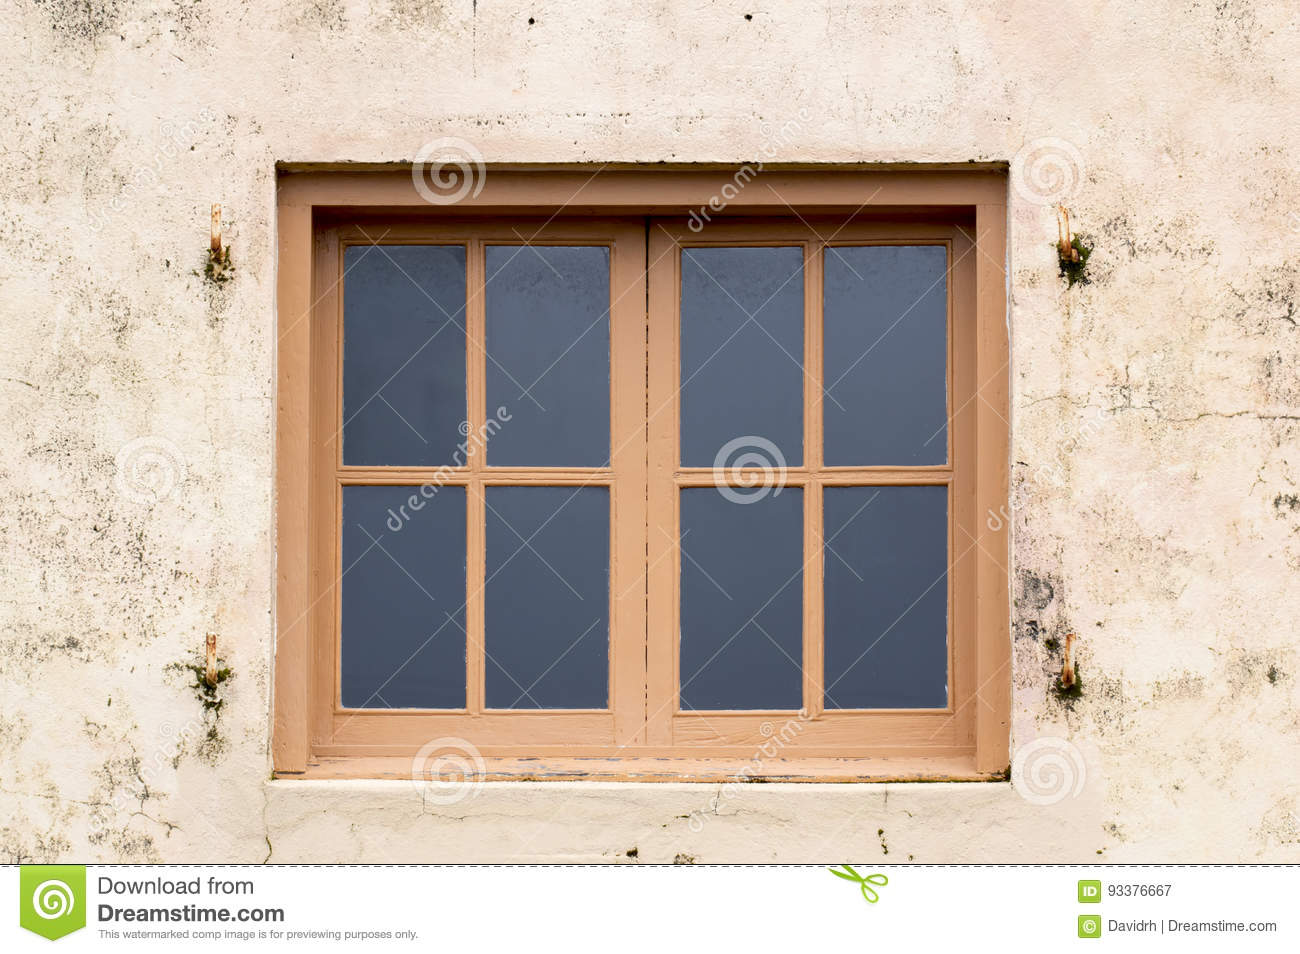 Wood Framed Windows On Plaster Wall Stock Image - Image of outside ...